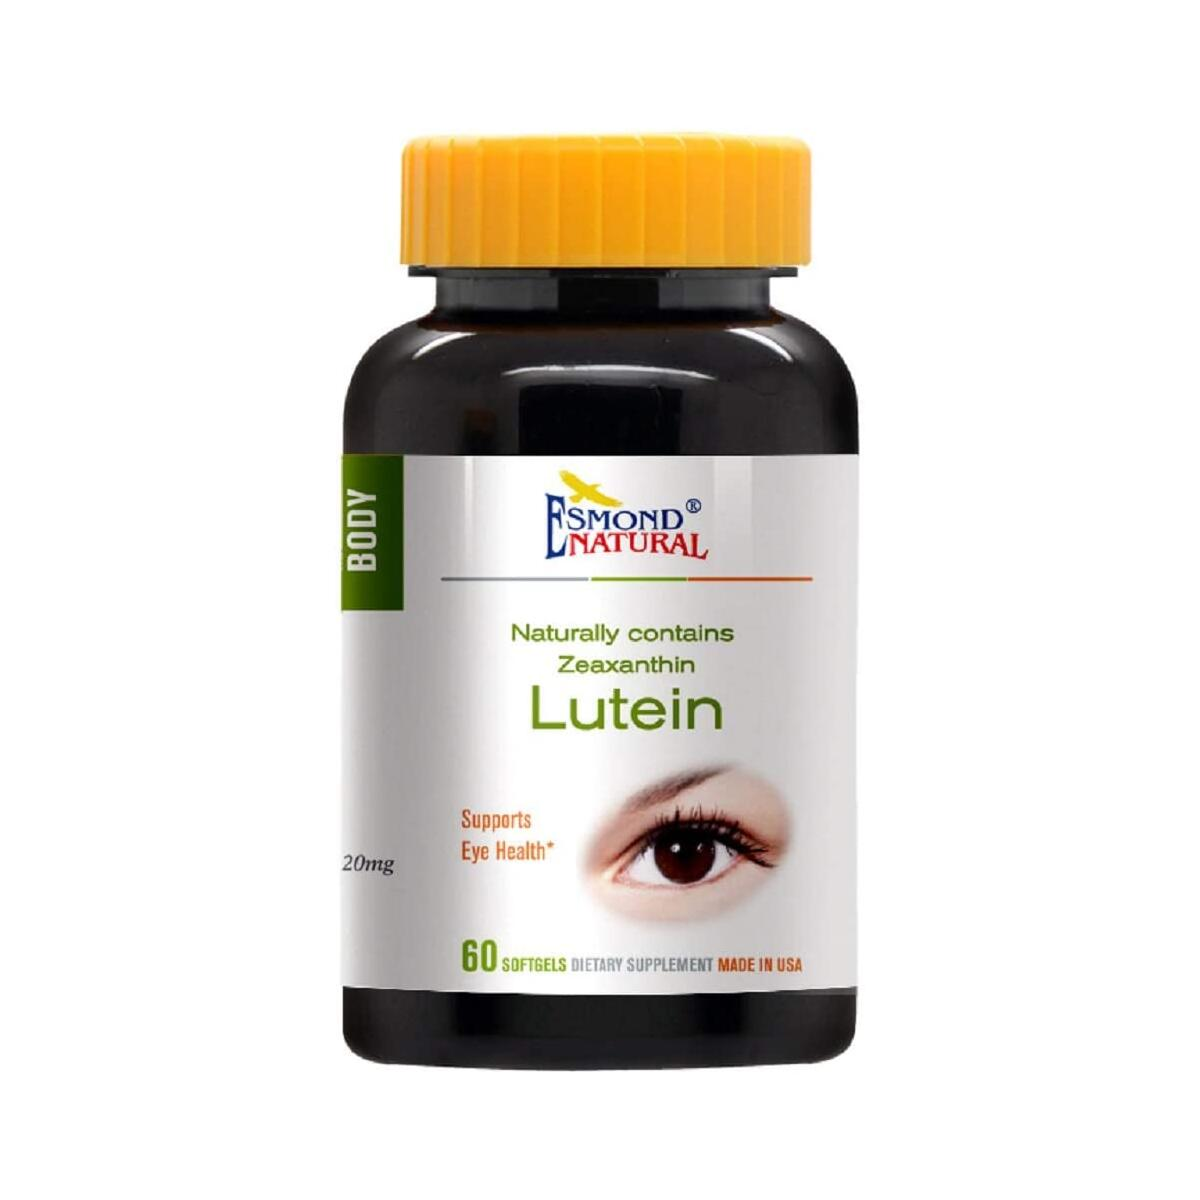 (5 Count, 25% Off) Esmond Natural: Lutein (Naturally Contains Zeaznthin, Supports Eye Health), GMP, Natural Product Assn Certified, Made in USA-20mg, 300 Softgels